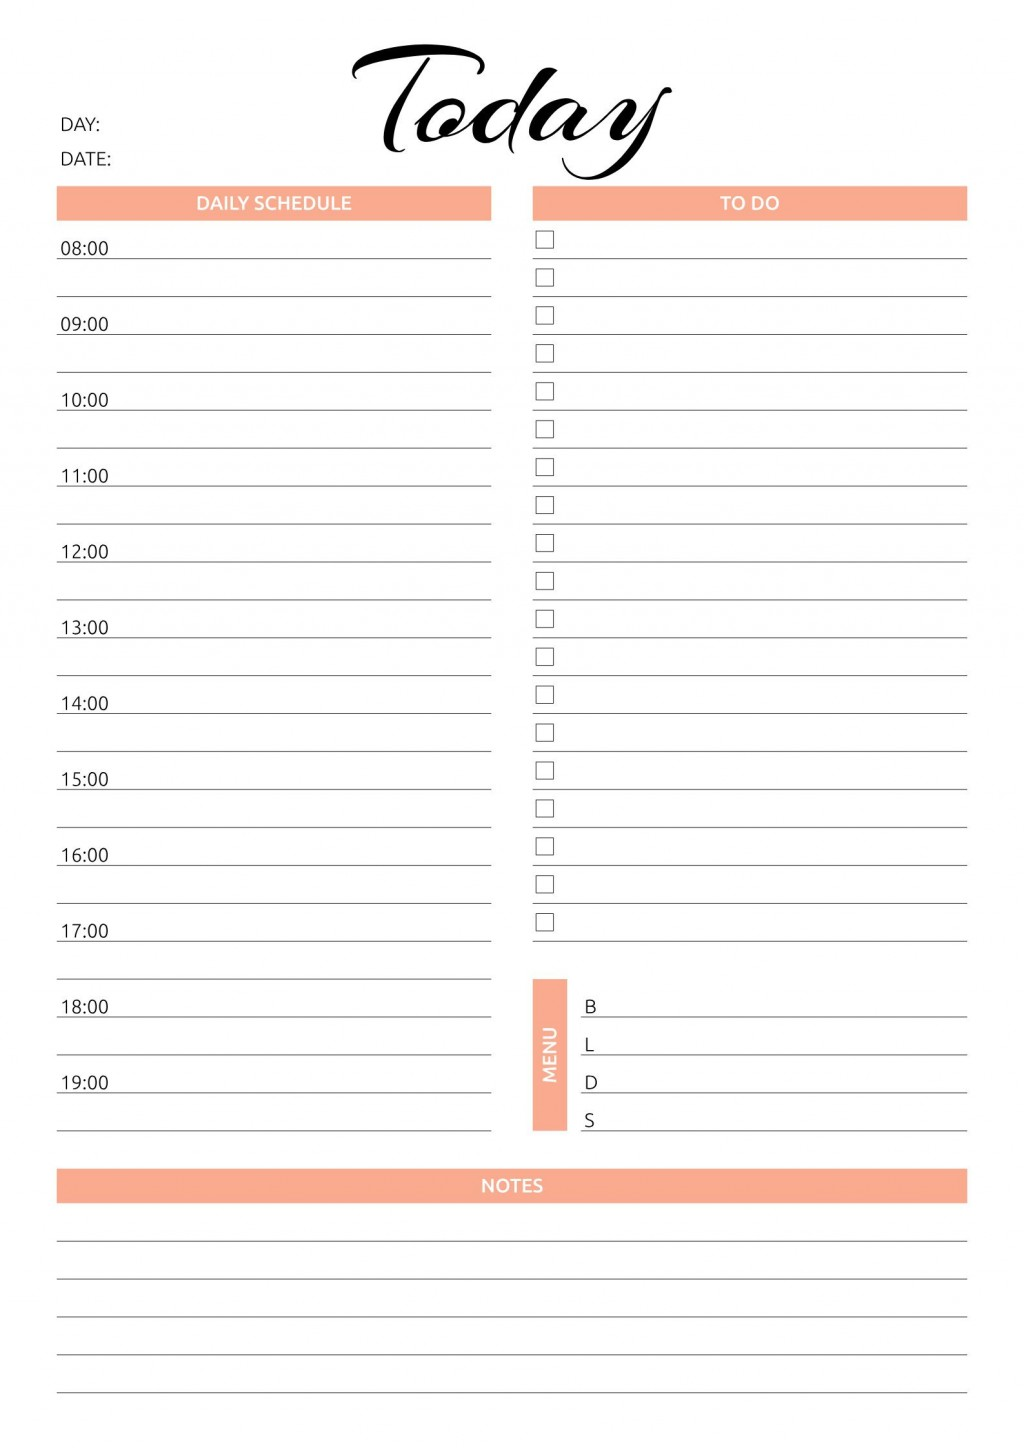 001 Simple Printable Daily Schedule Template High Resolution Large